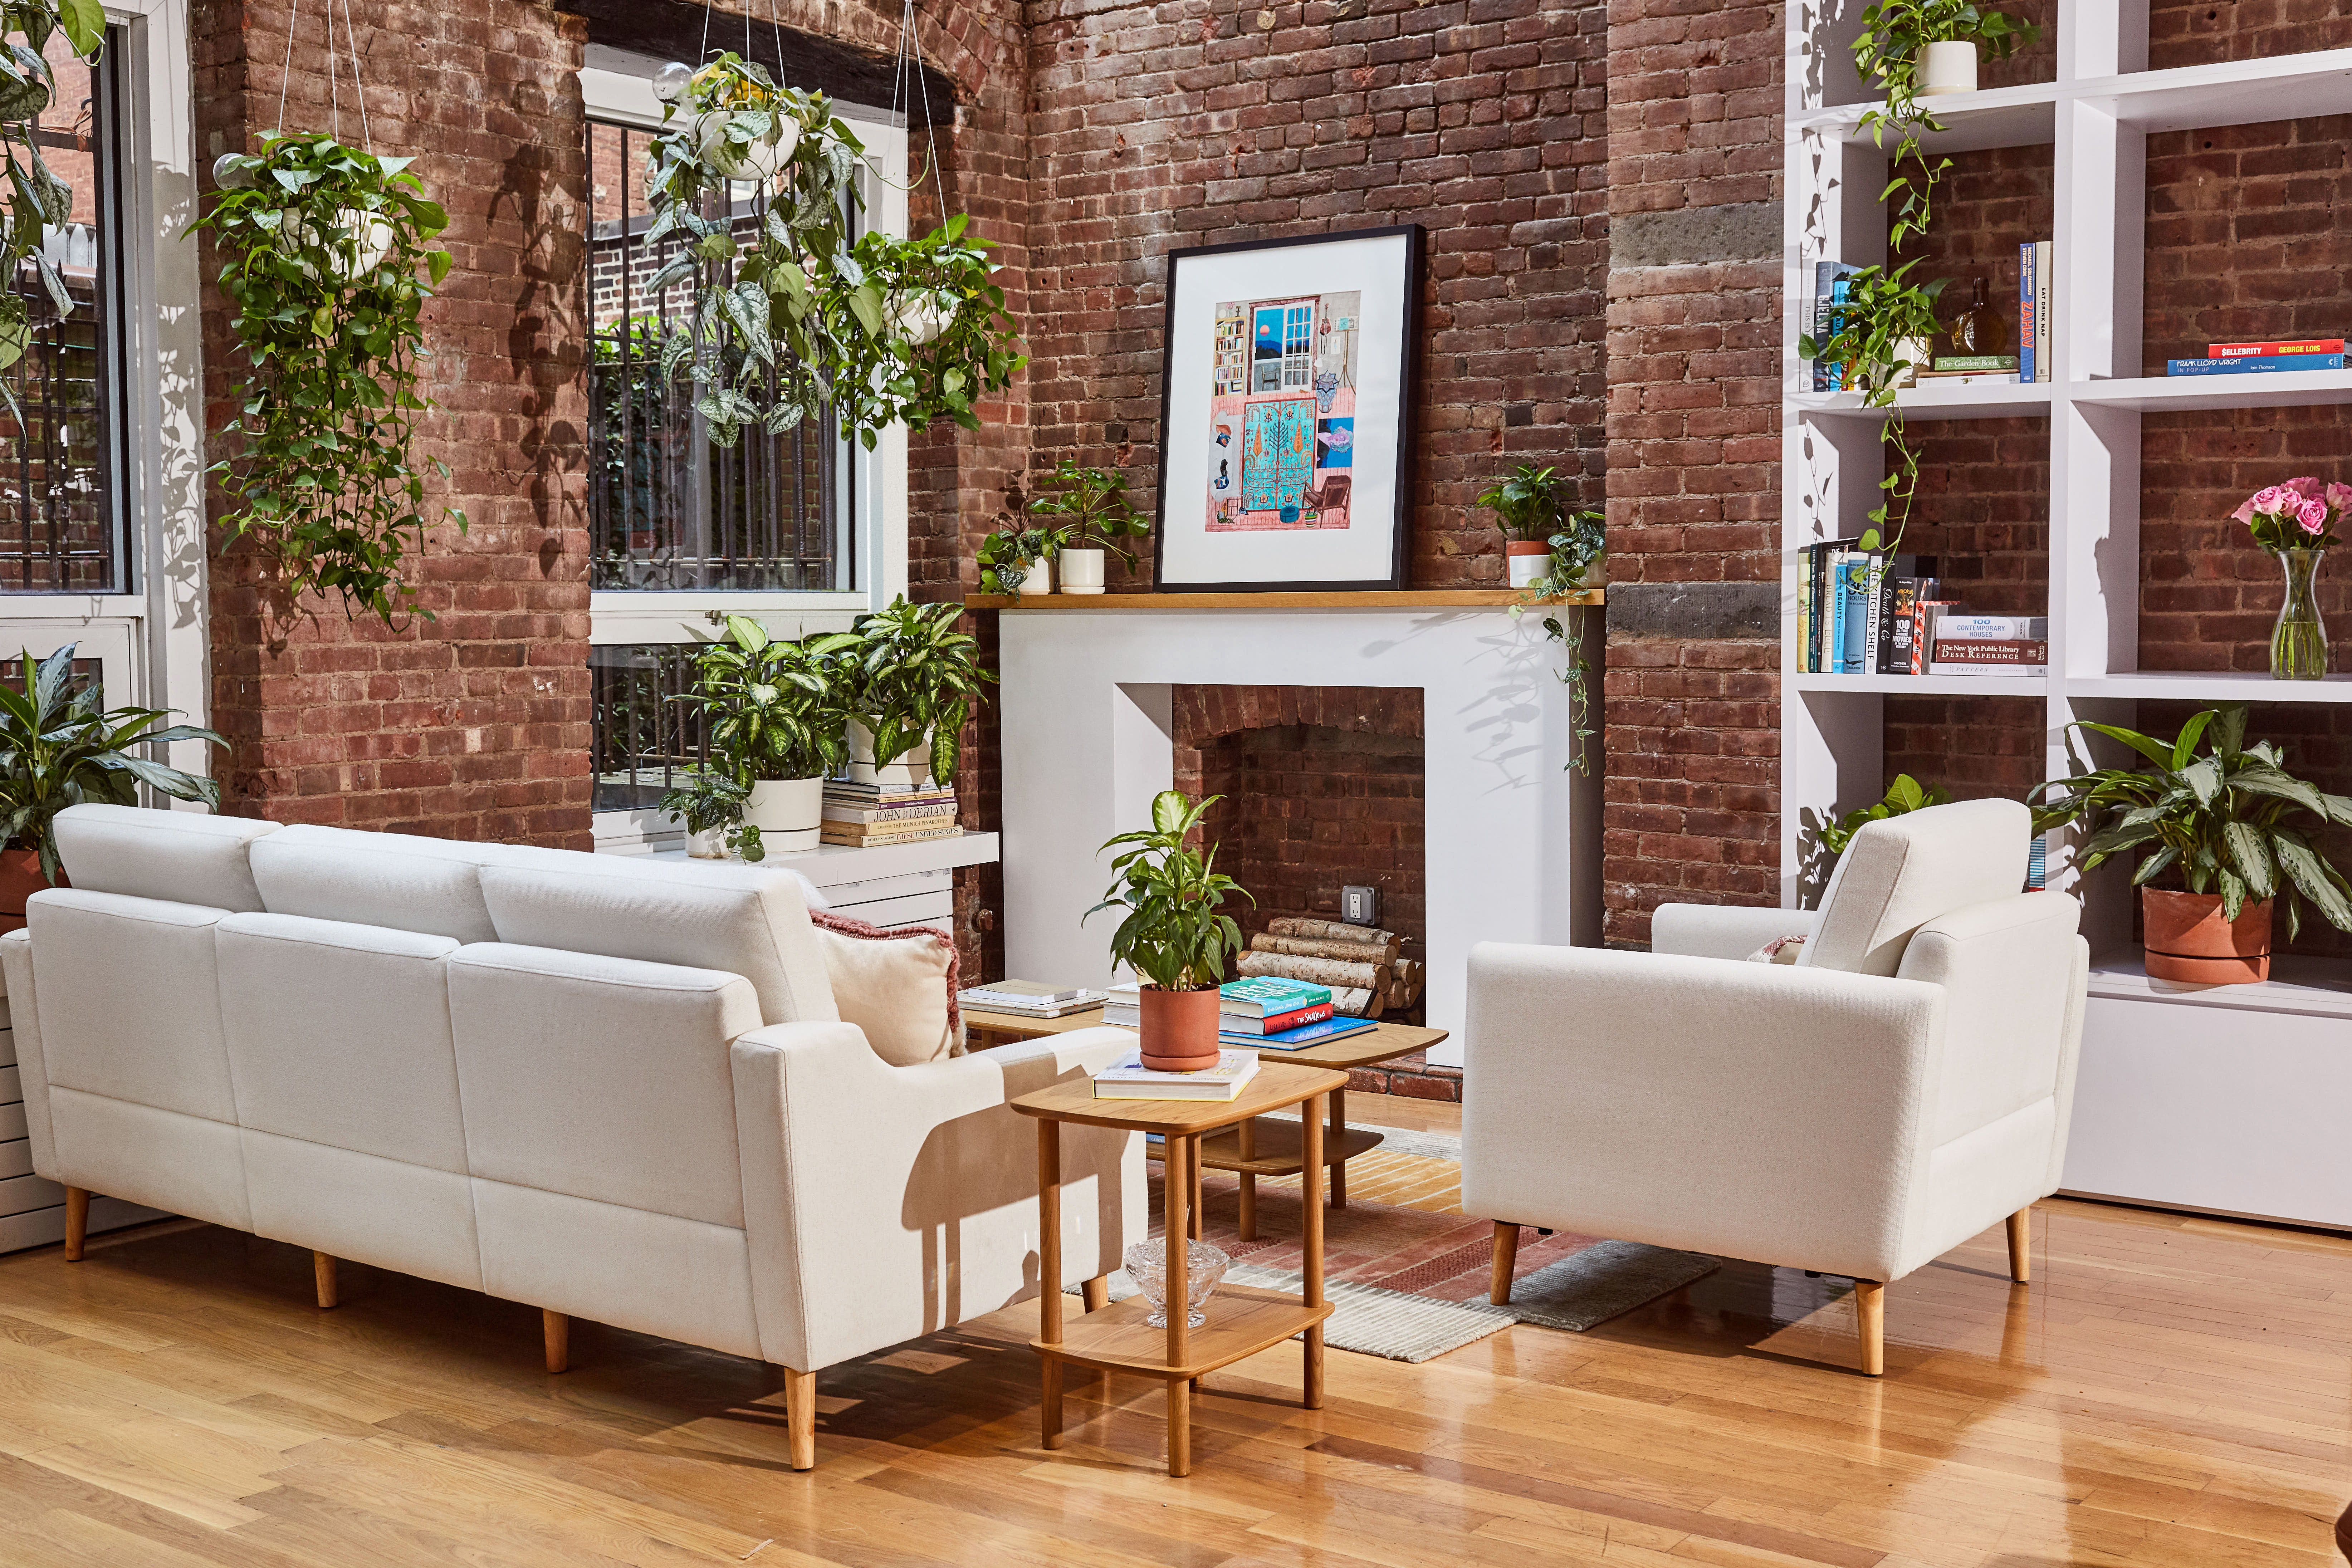 Living room with fire place and brick walls.